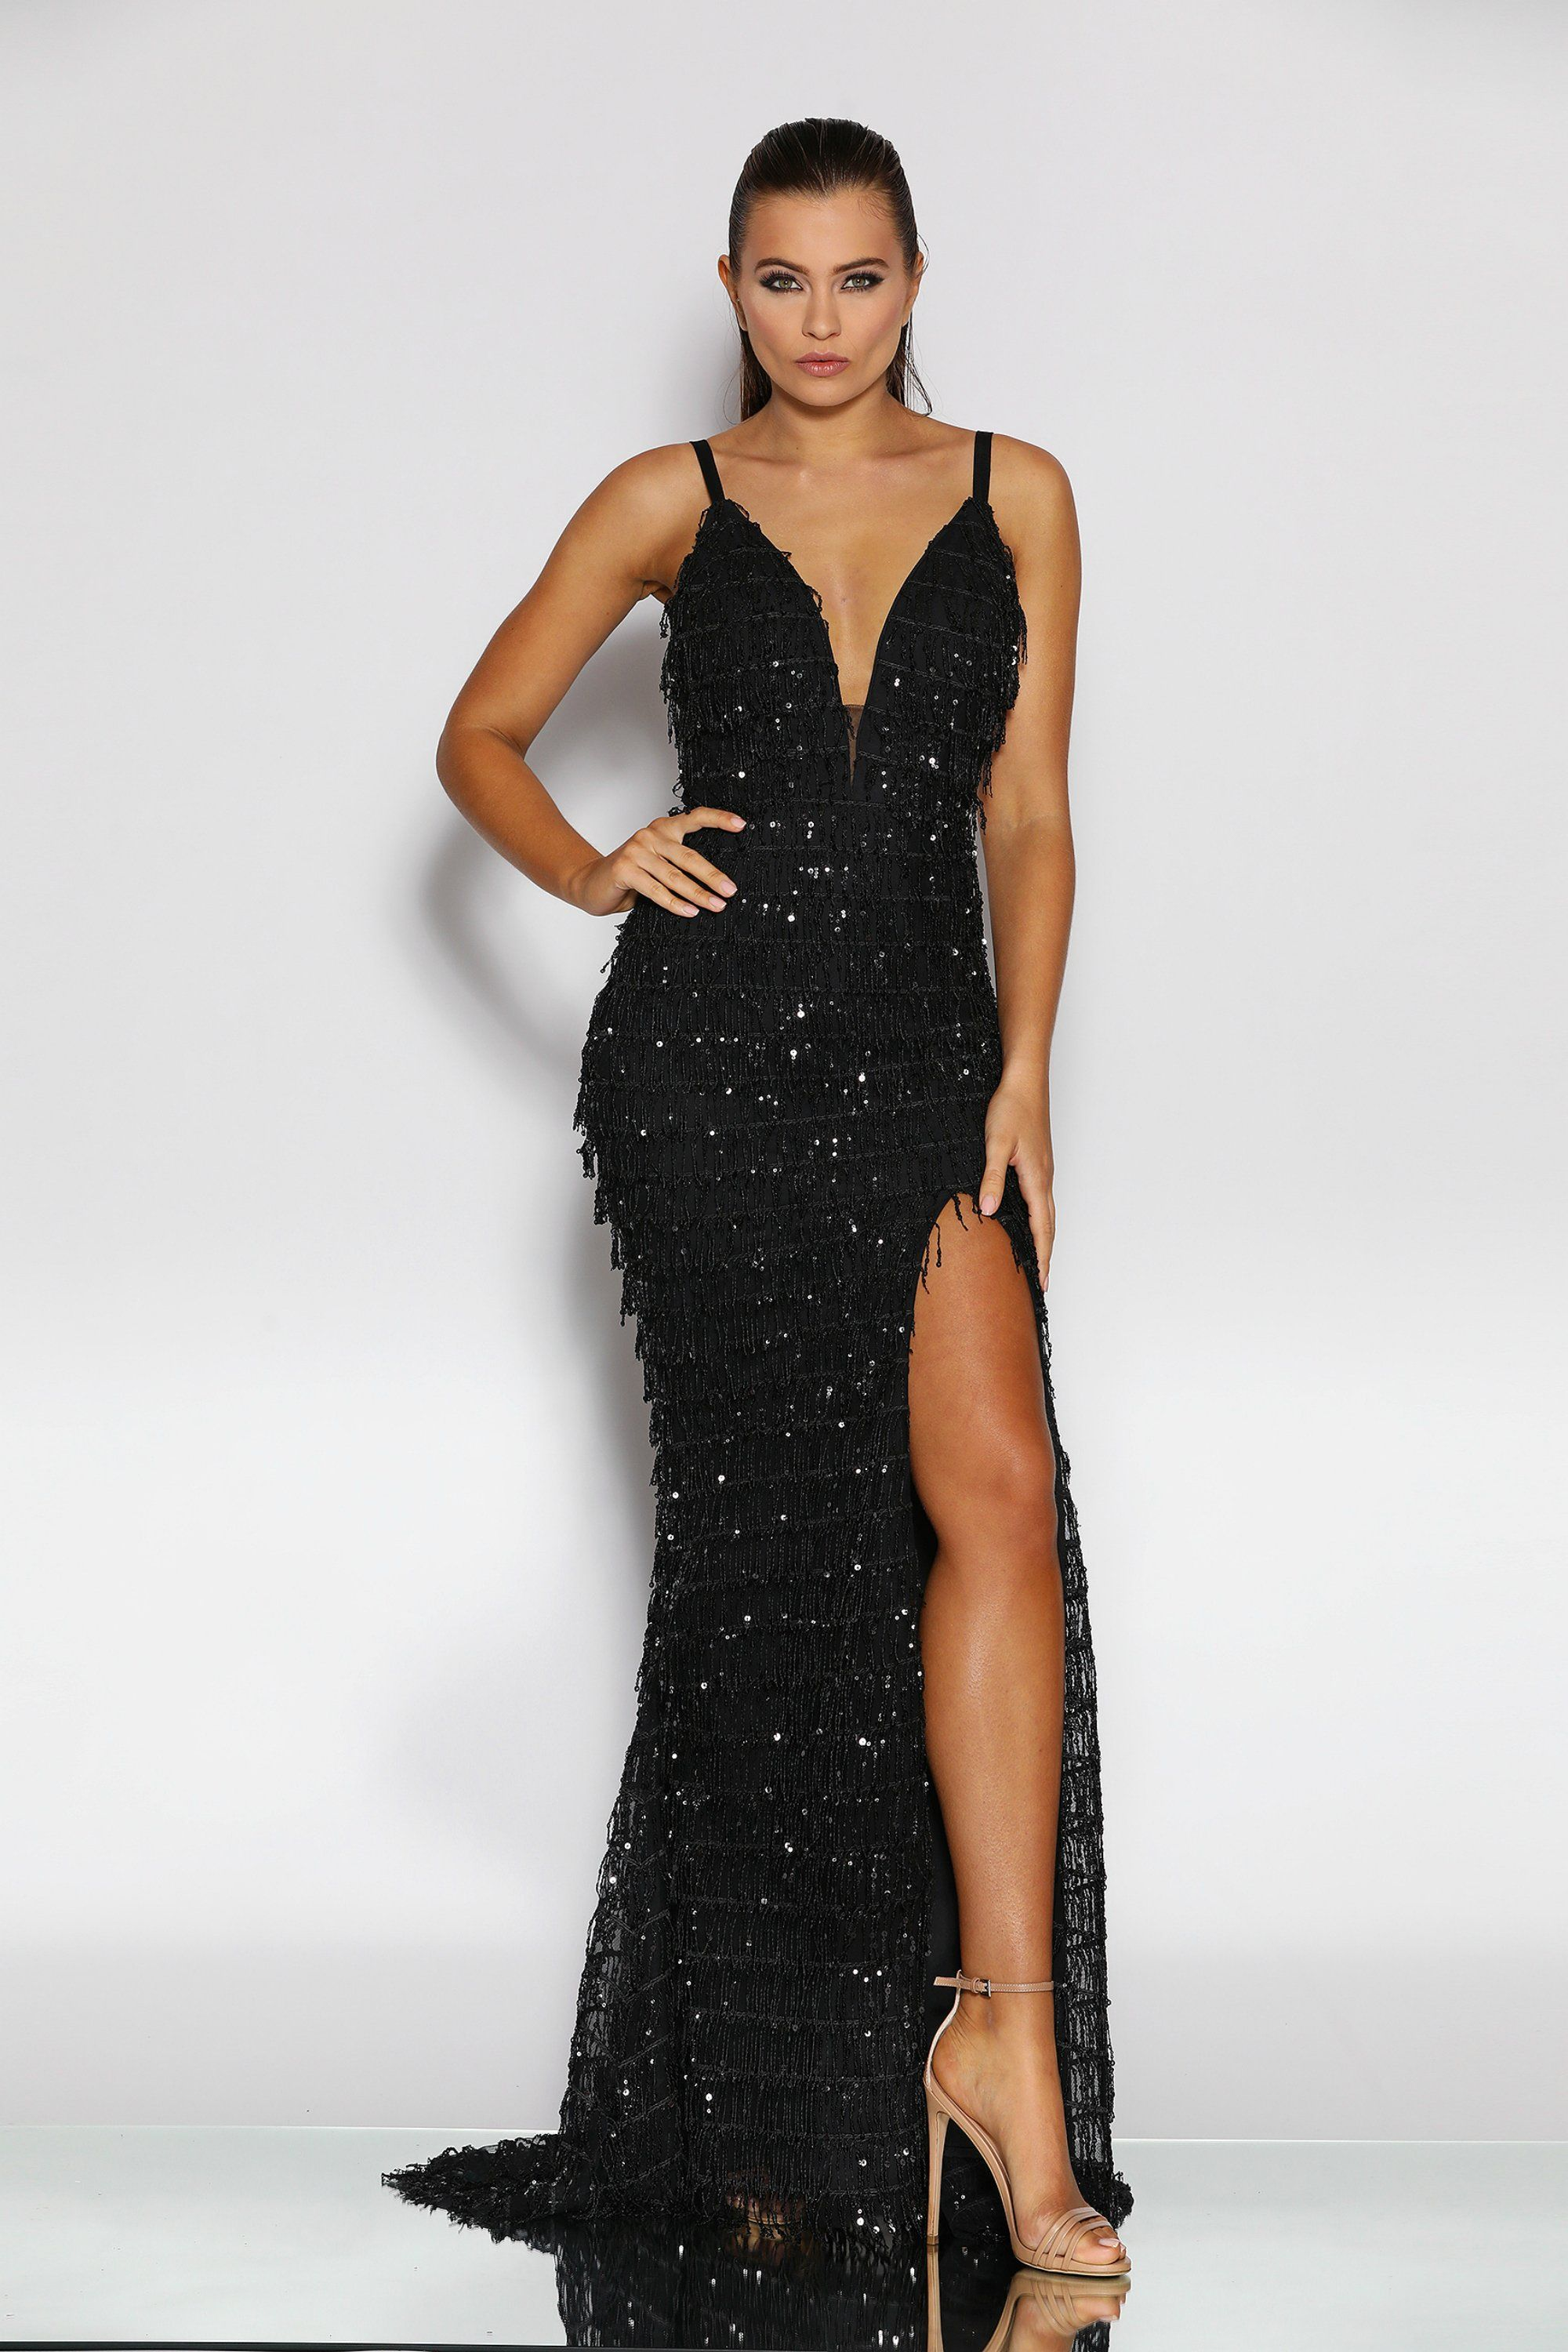 638205a9b4 Jadore JX2012 Black Fringing Tassel Sequin Formal Dress in 2019 ...